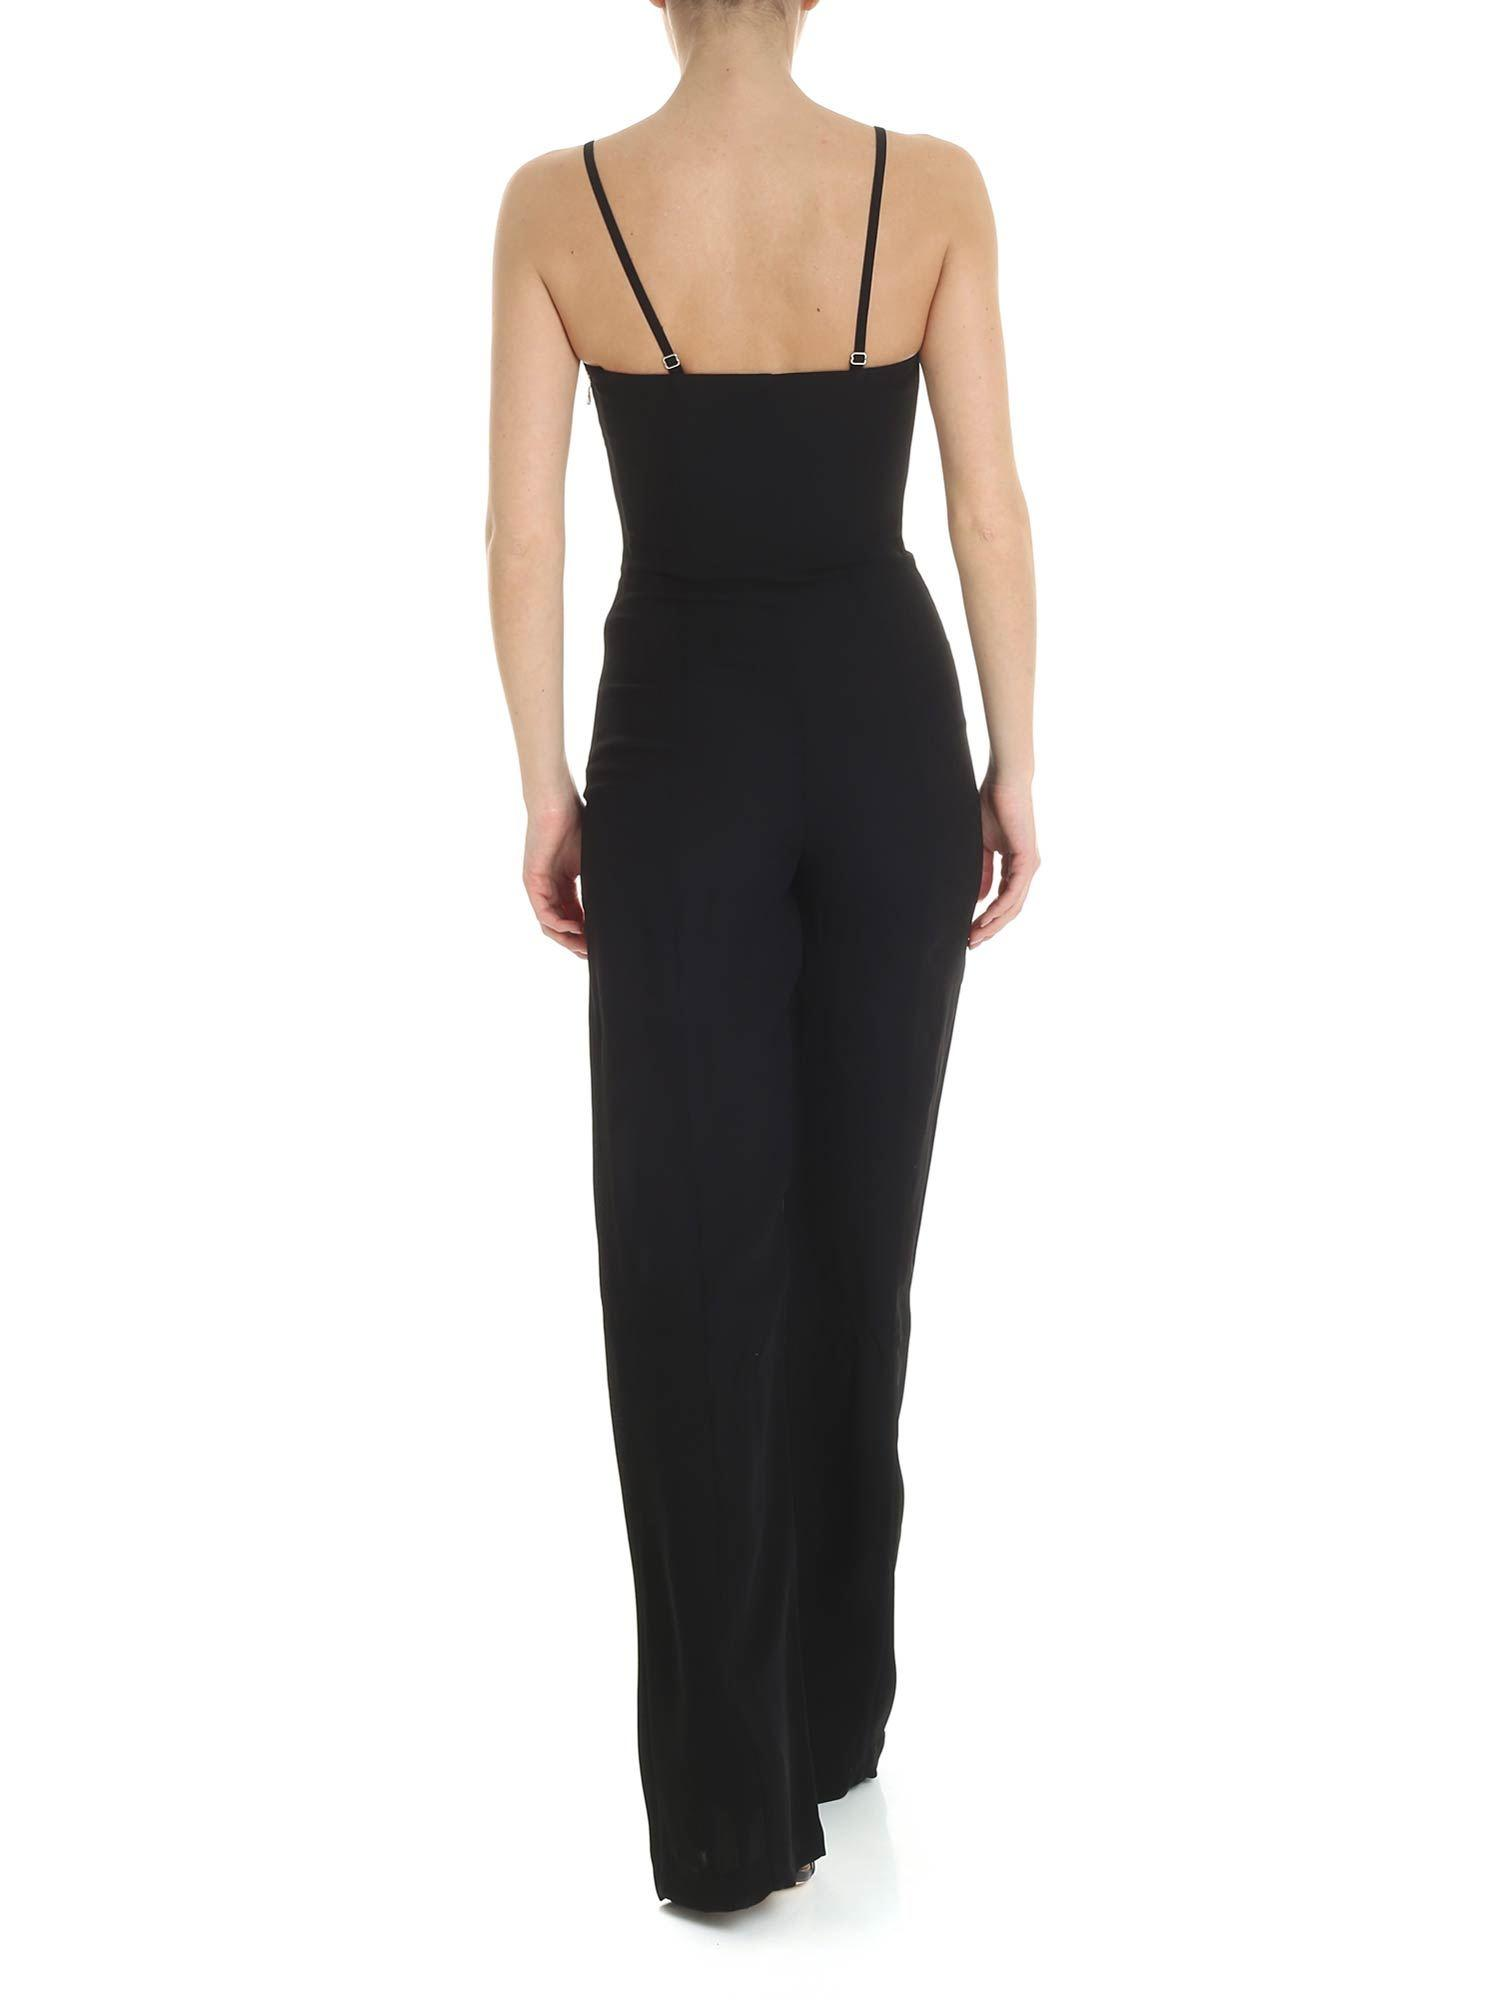 15804997c patrizia-pepe-black-Black-Jumpsuit-With-Silver-Beads.jpeg